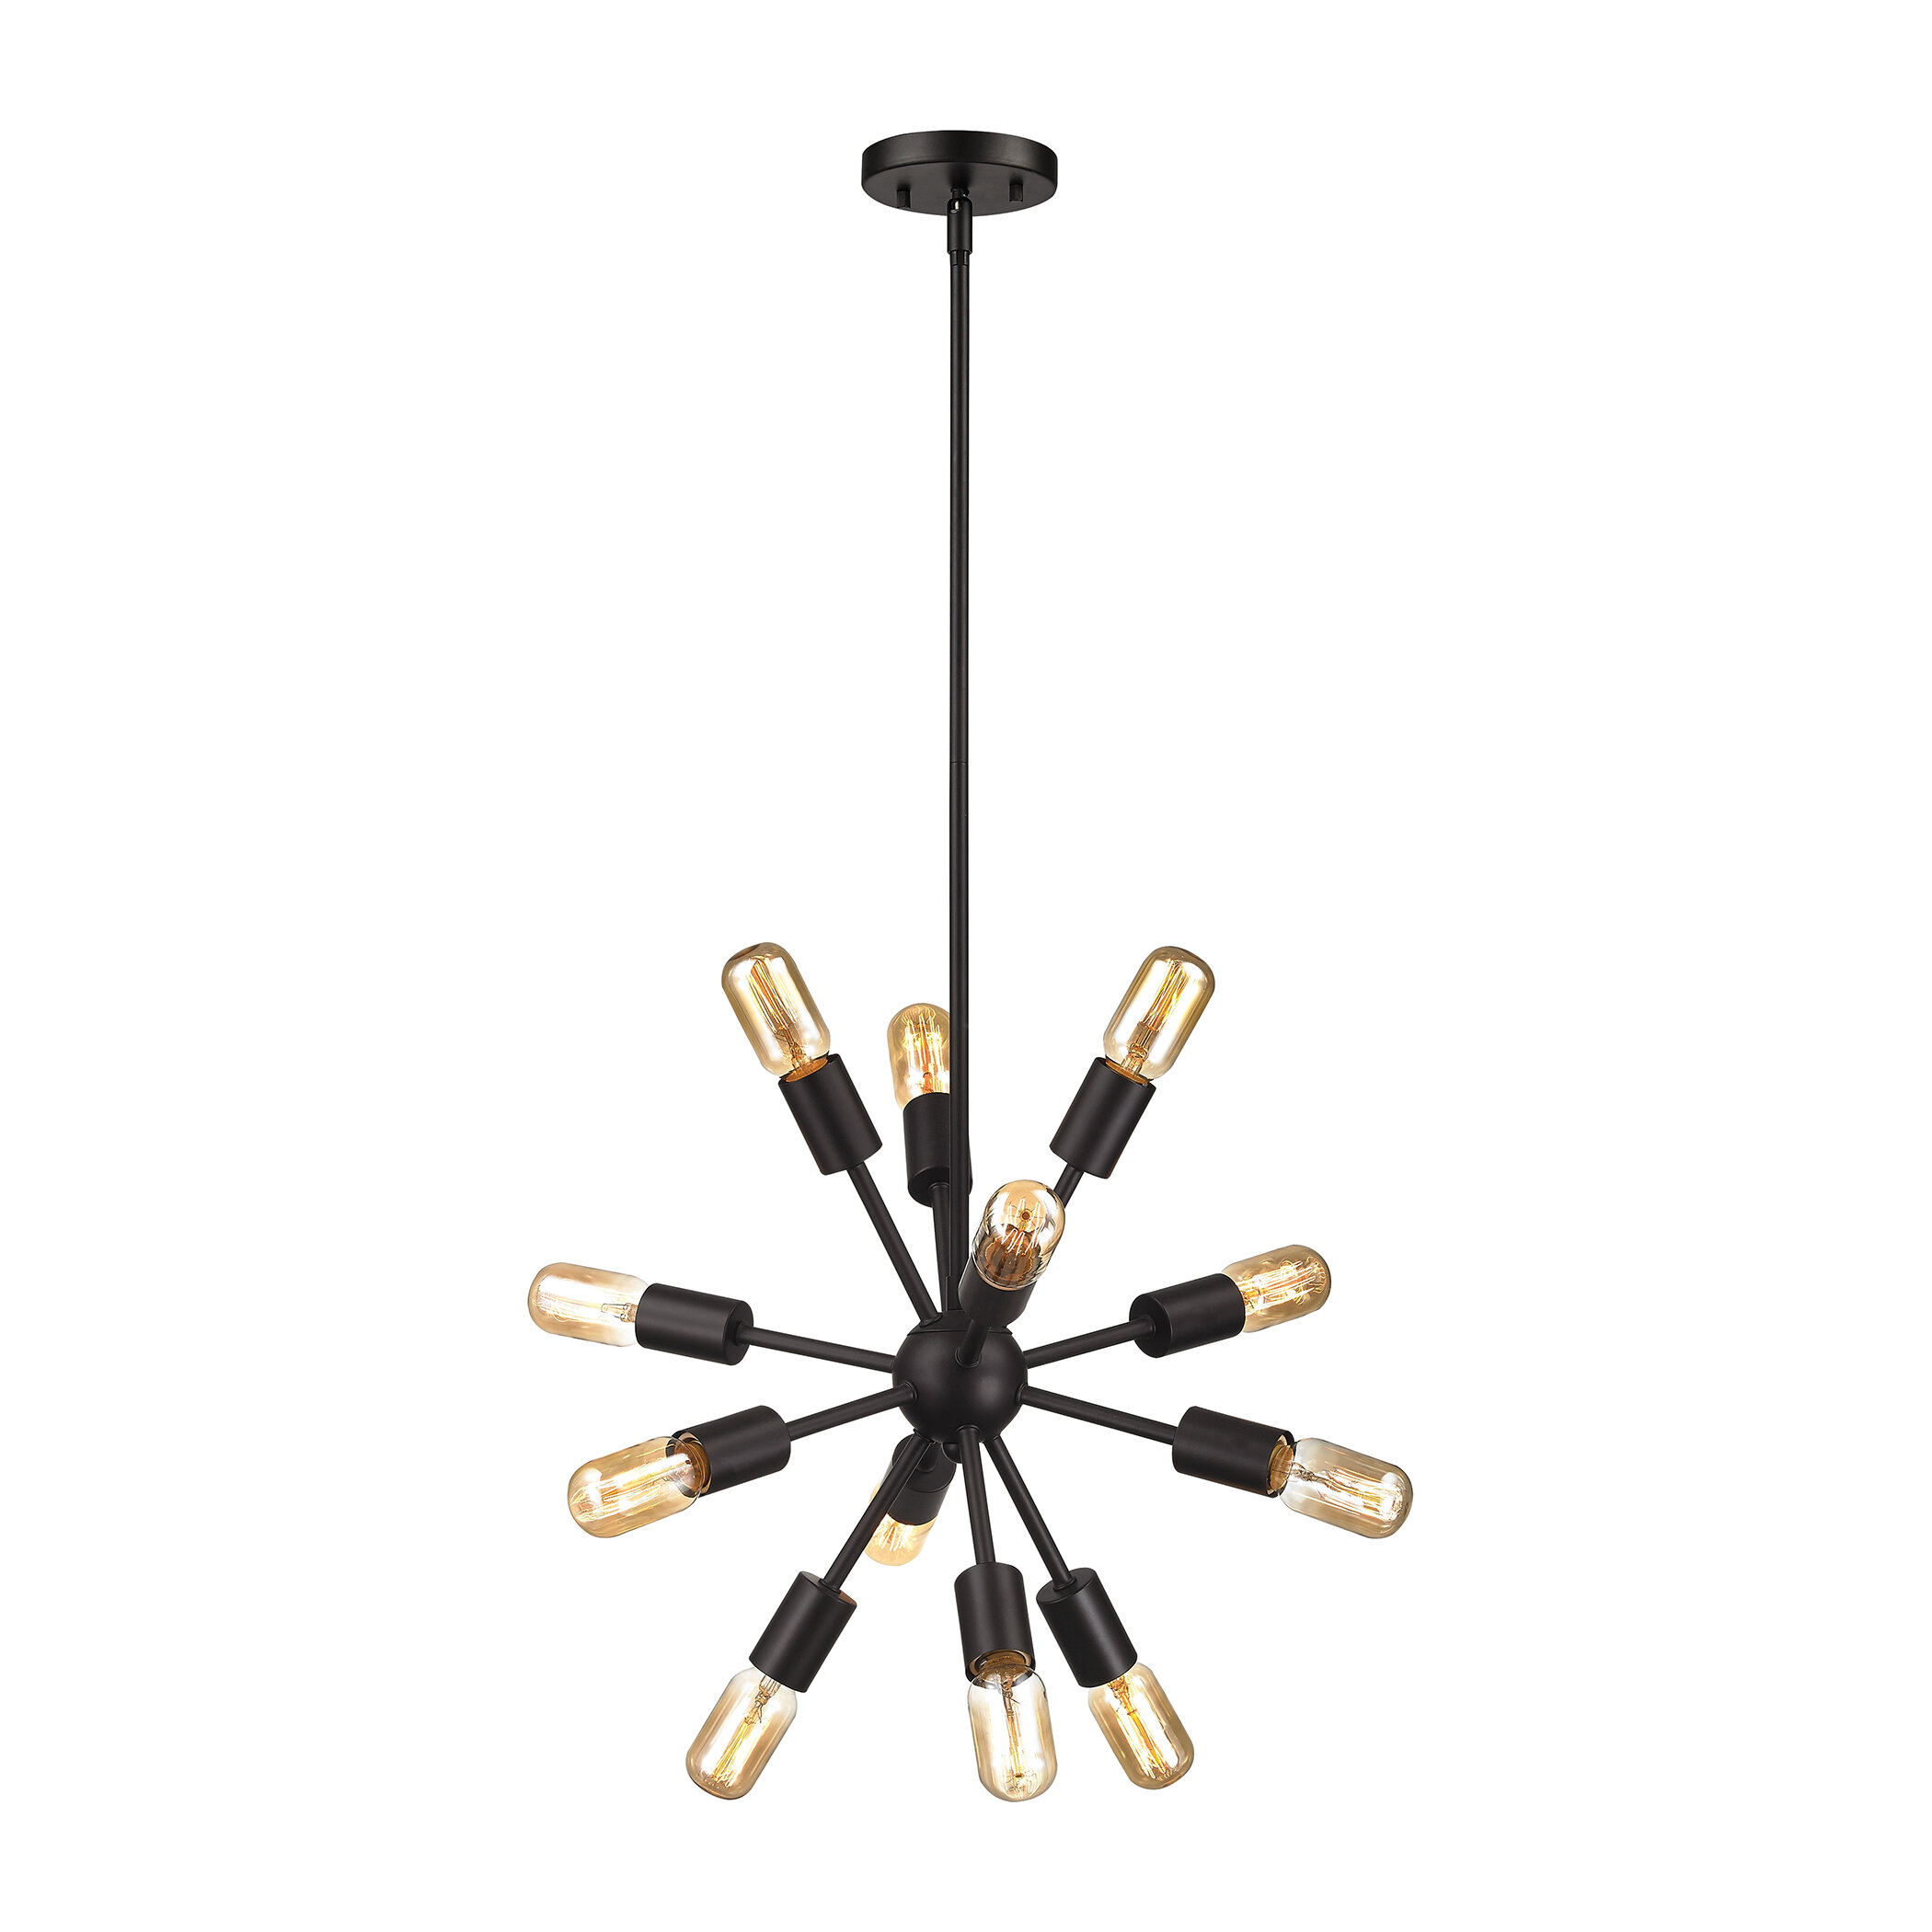 Langley street kendall 12 light chandelier reviews wayfair aloadofball Choice Image